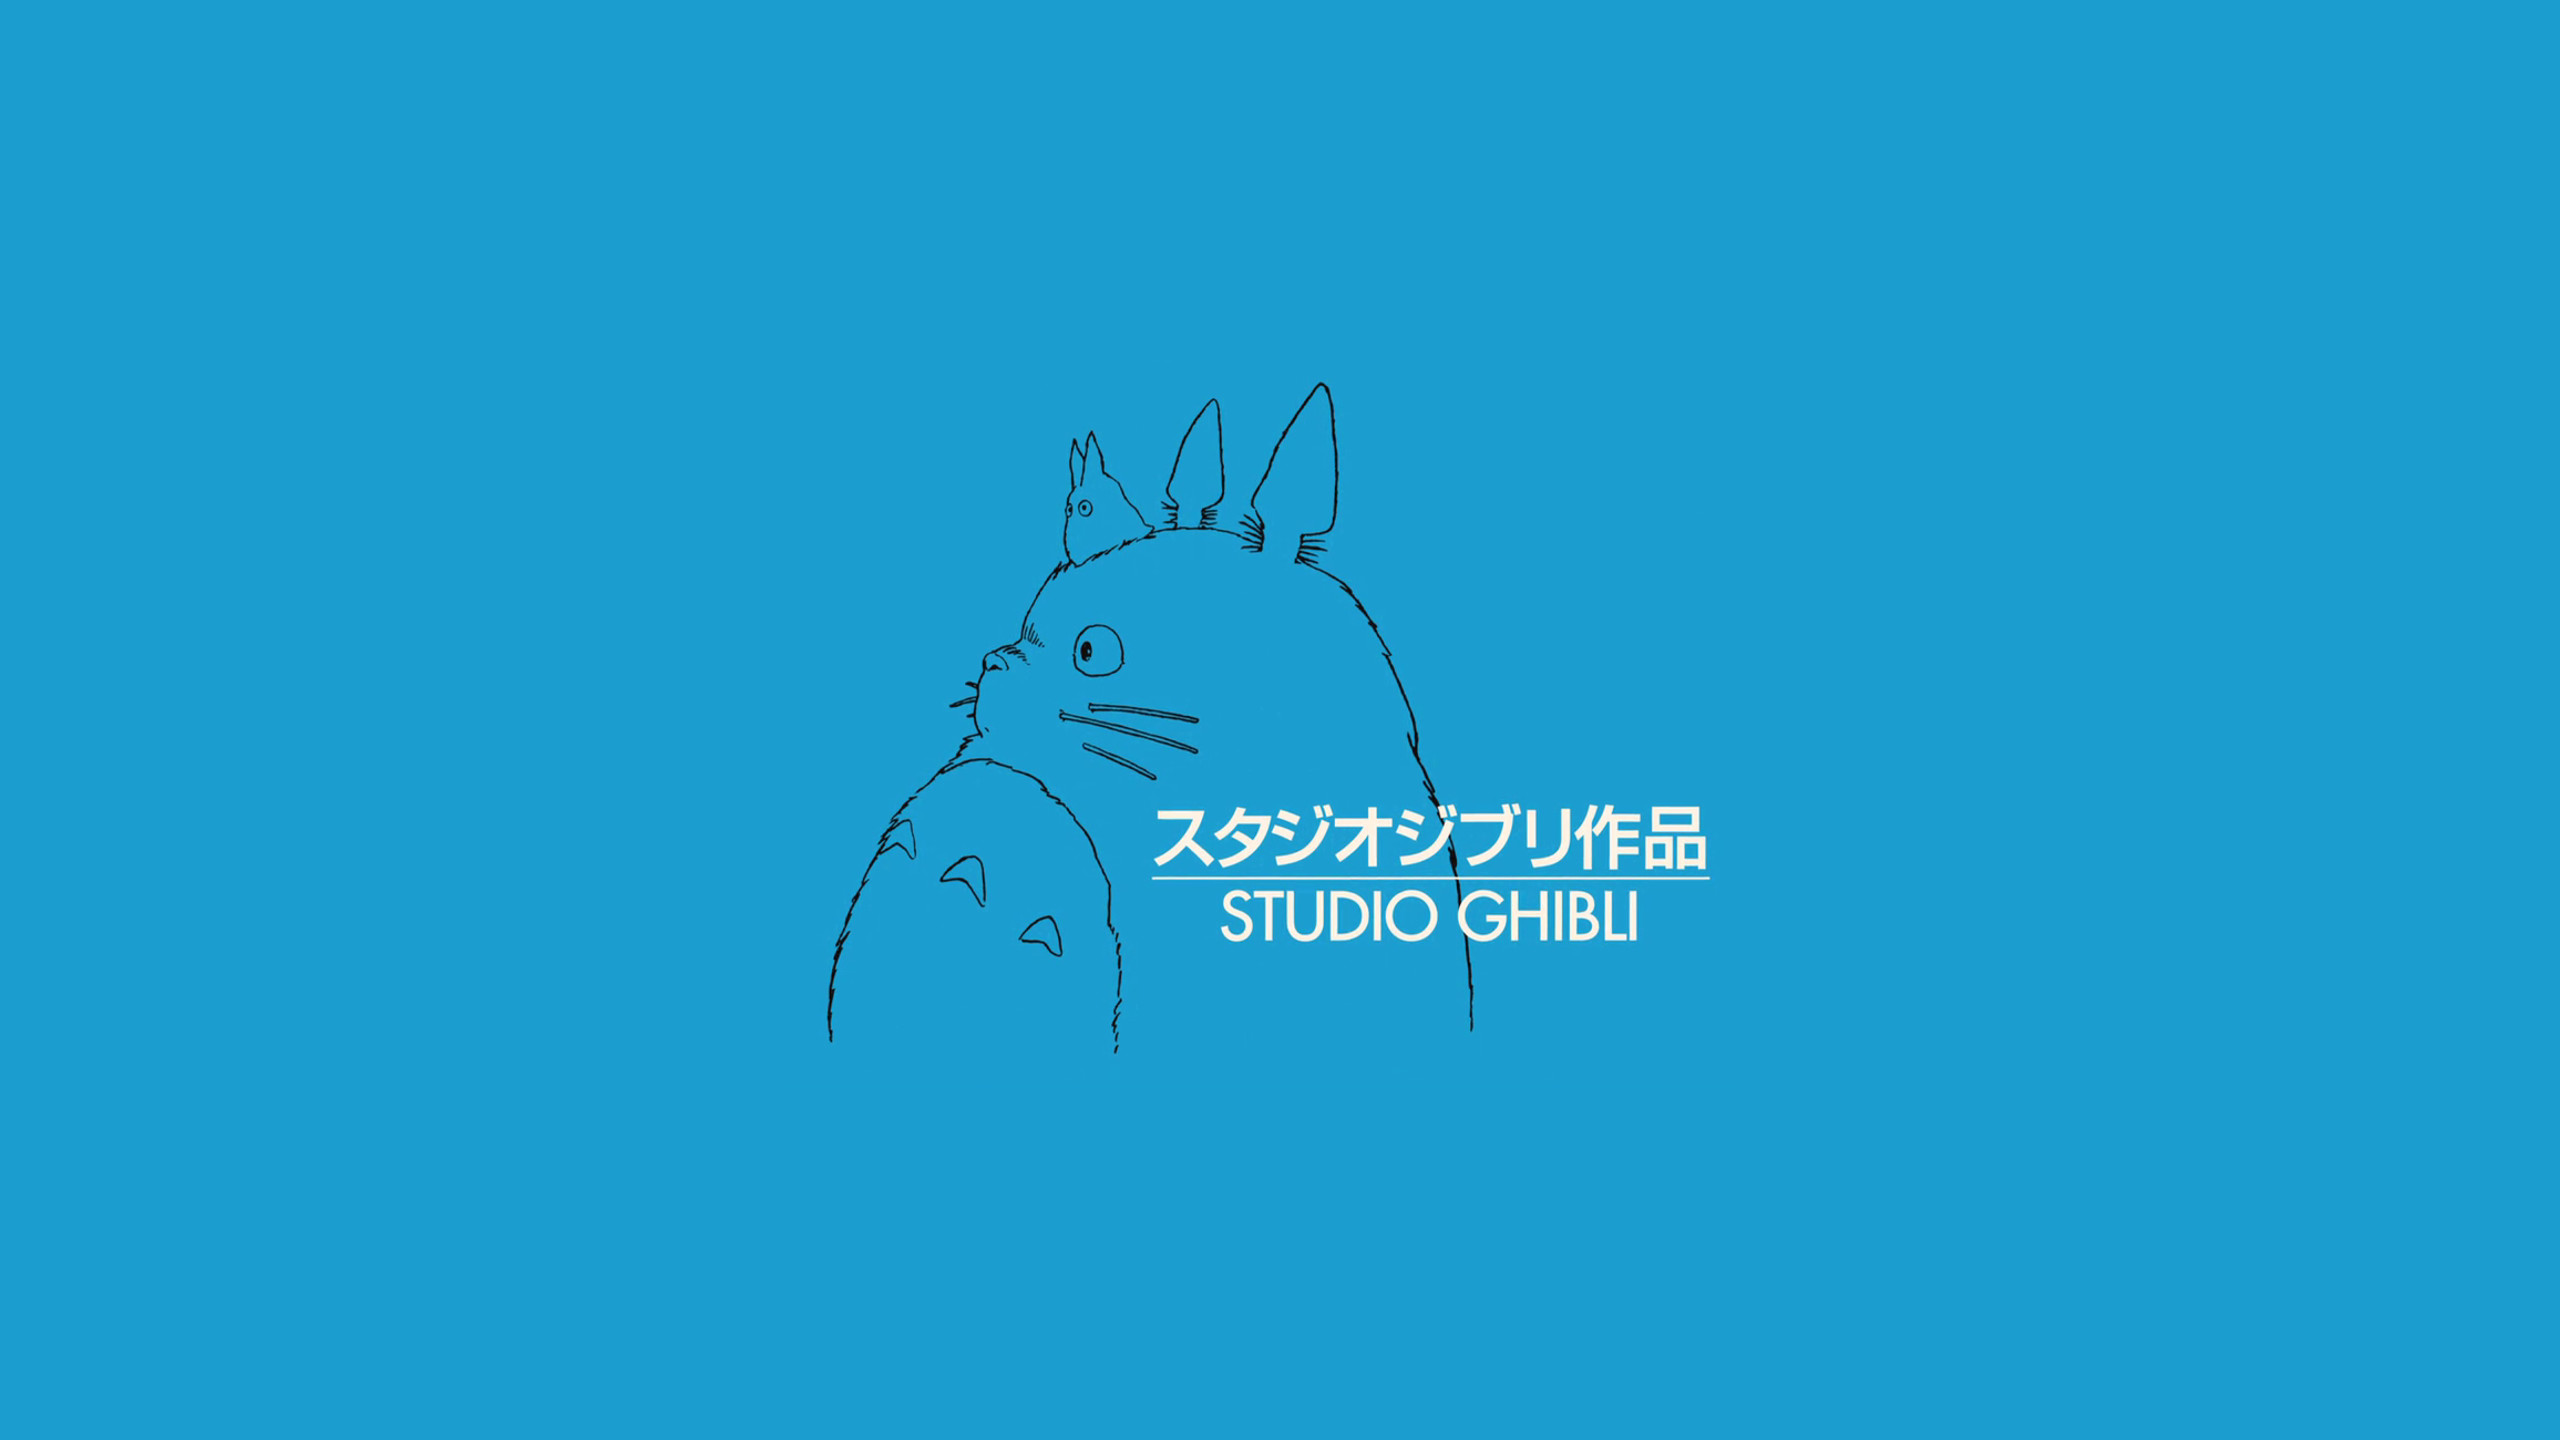 2560x1440 100 Studio Ghibli wallpapers